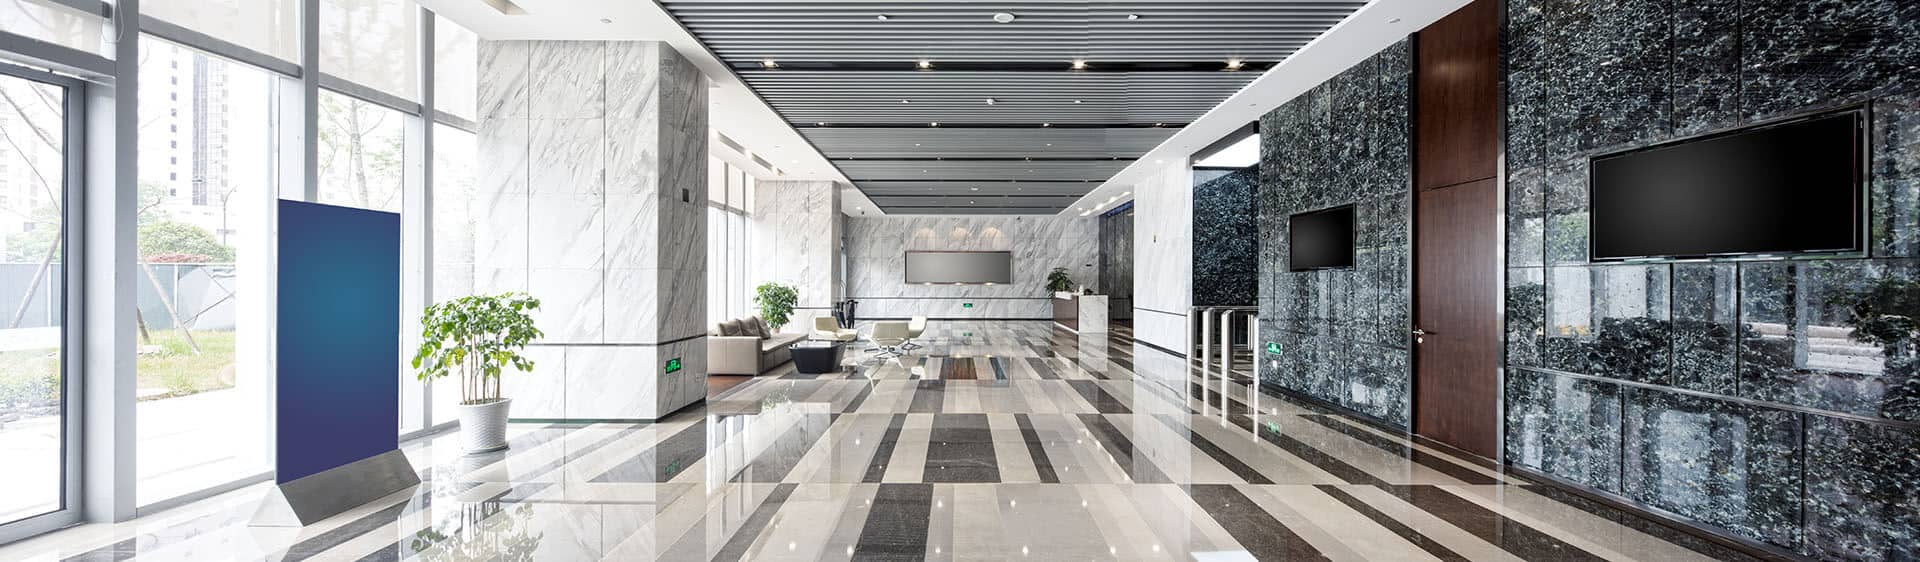 New York City Hallway Remodeling, Building Lobby Remodeling and Stairway Remodeling